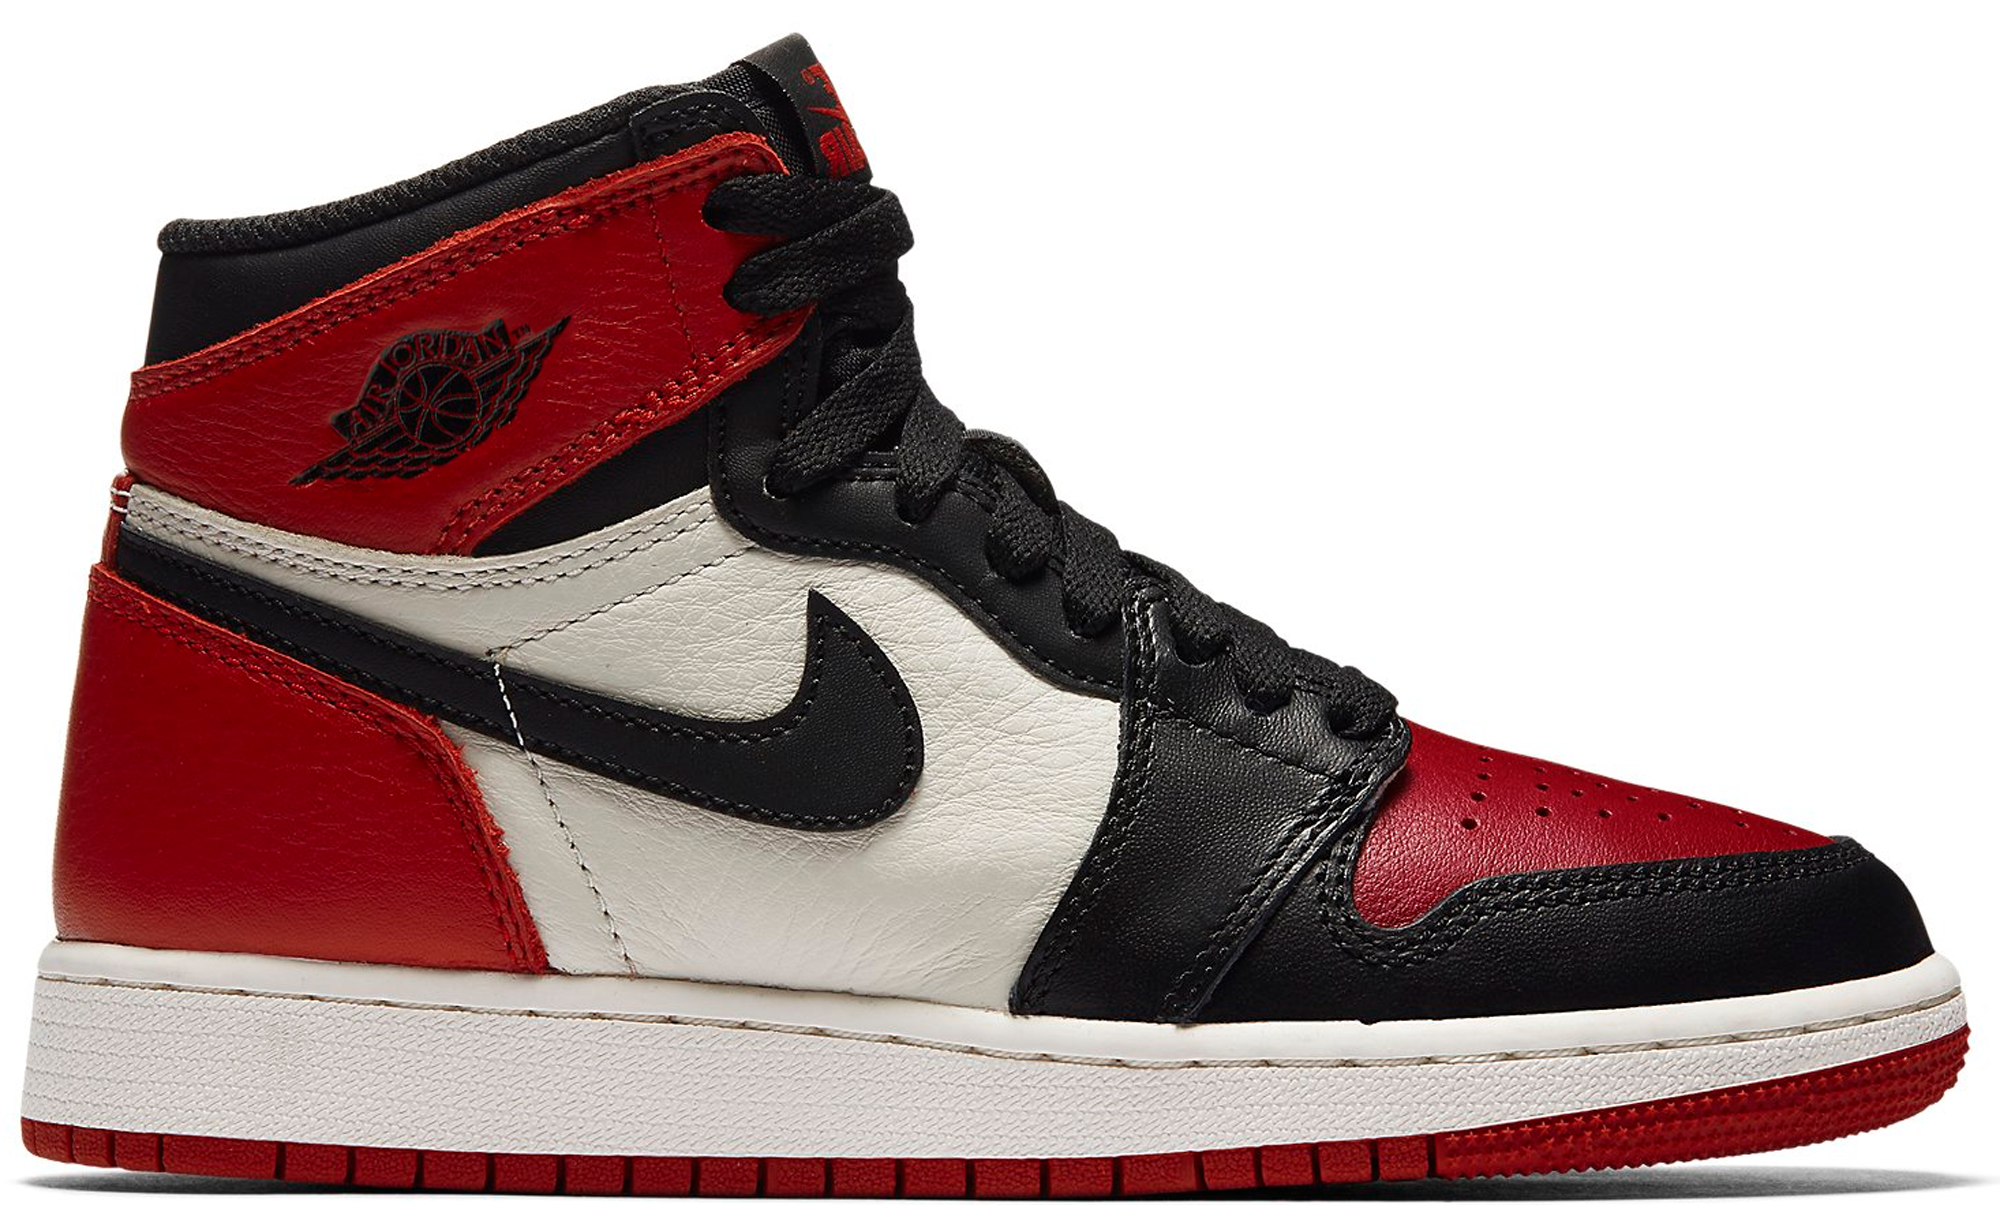 Jordan 1 Retro High Bred Toe (GS)